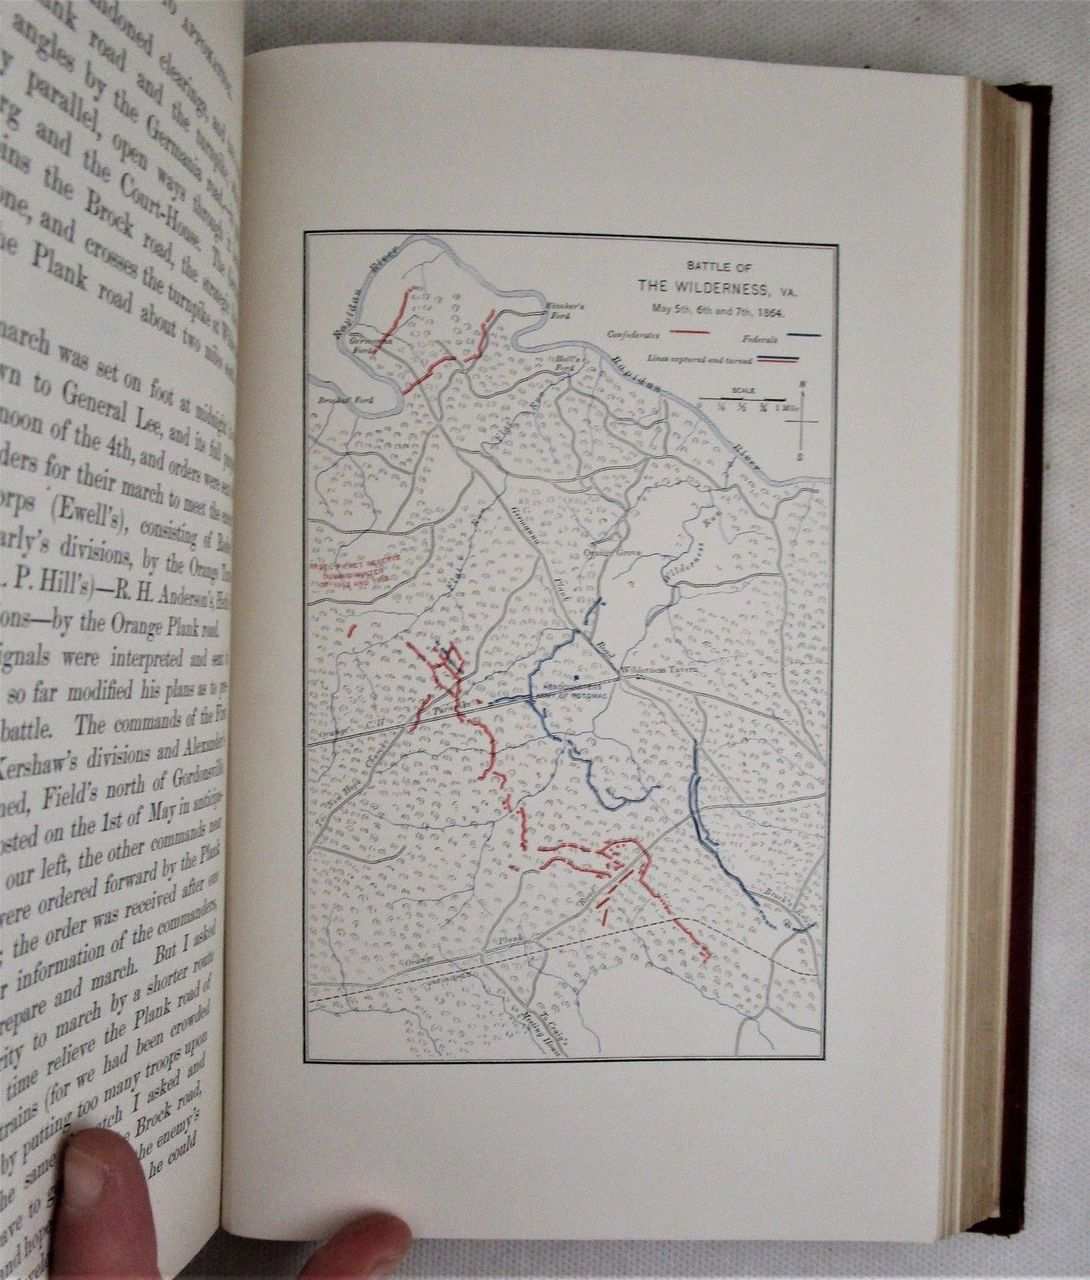 FROM MANASSAS TO APPOMATTOX, James Longstreet - 1896 [1st Ed]